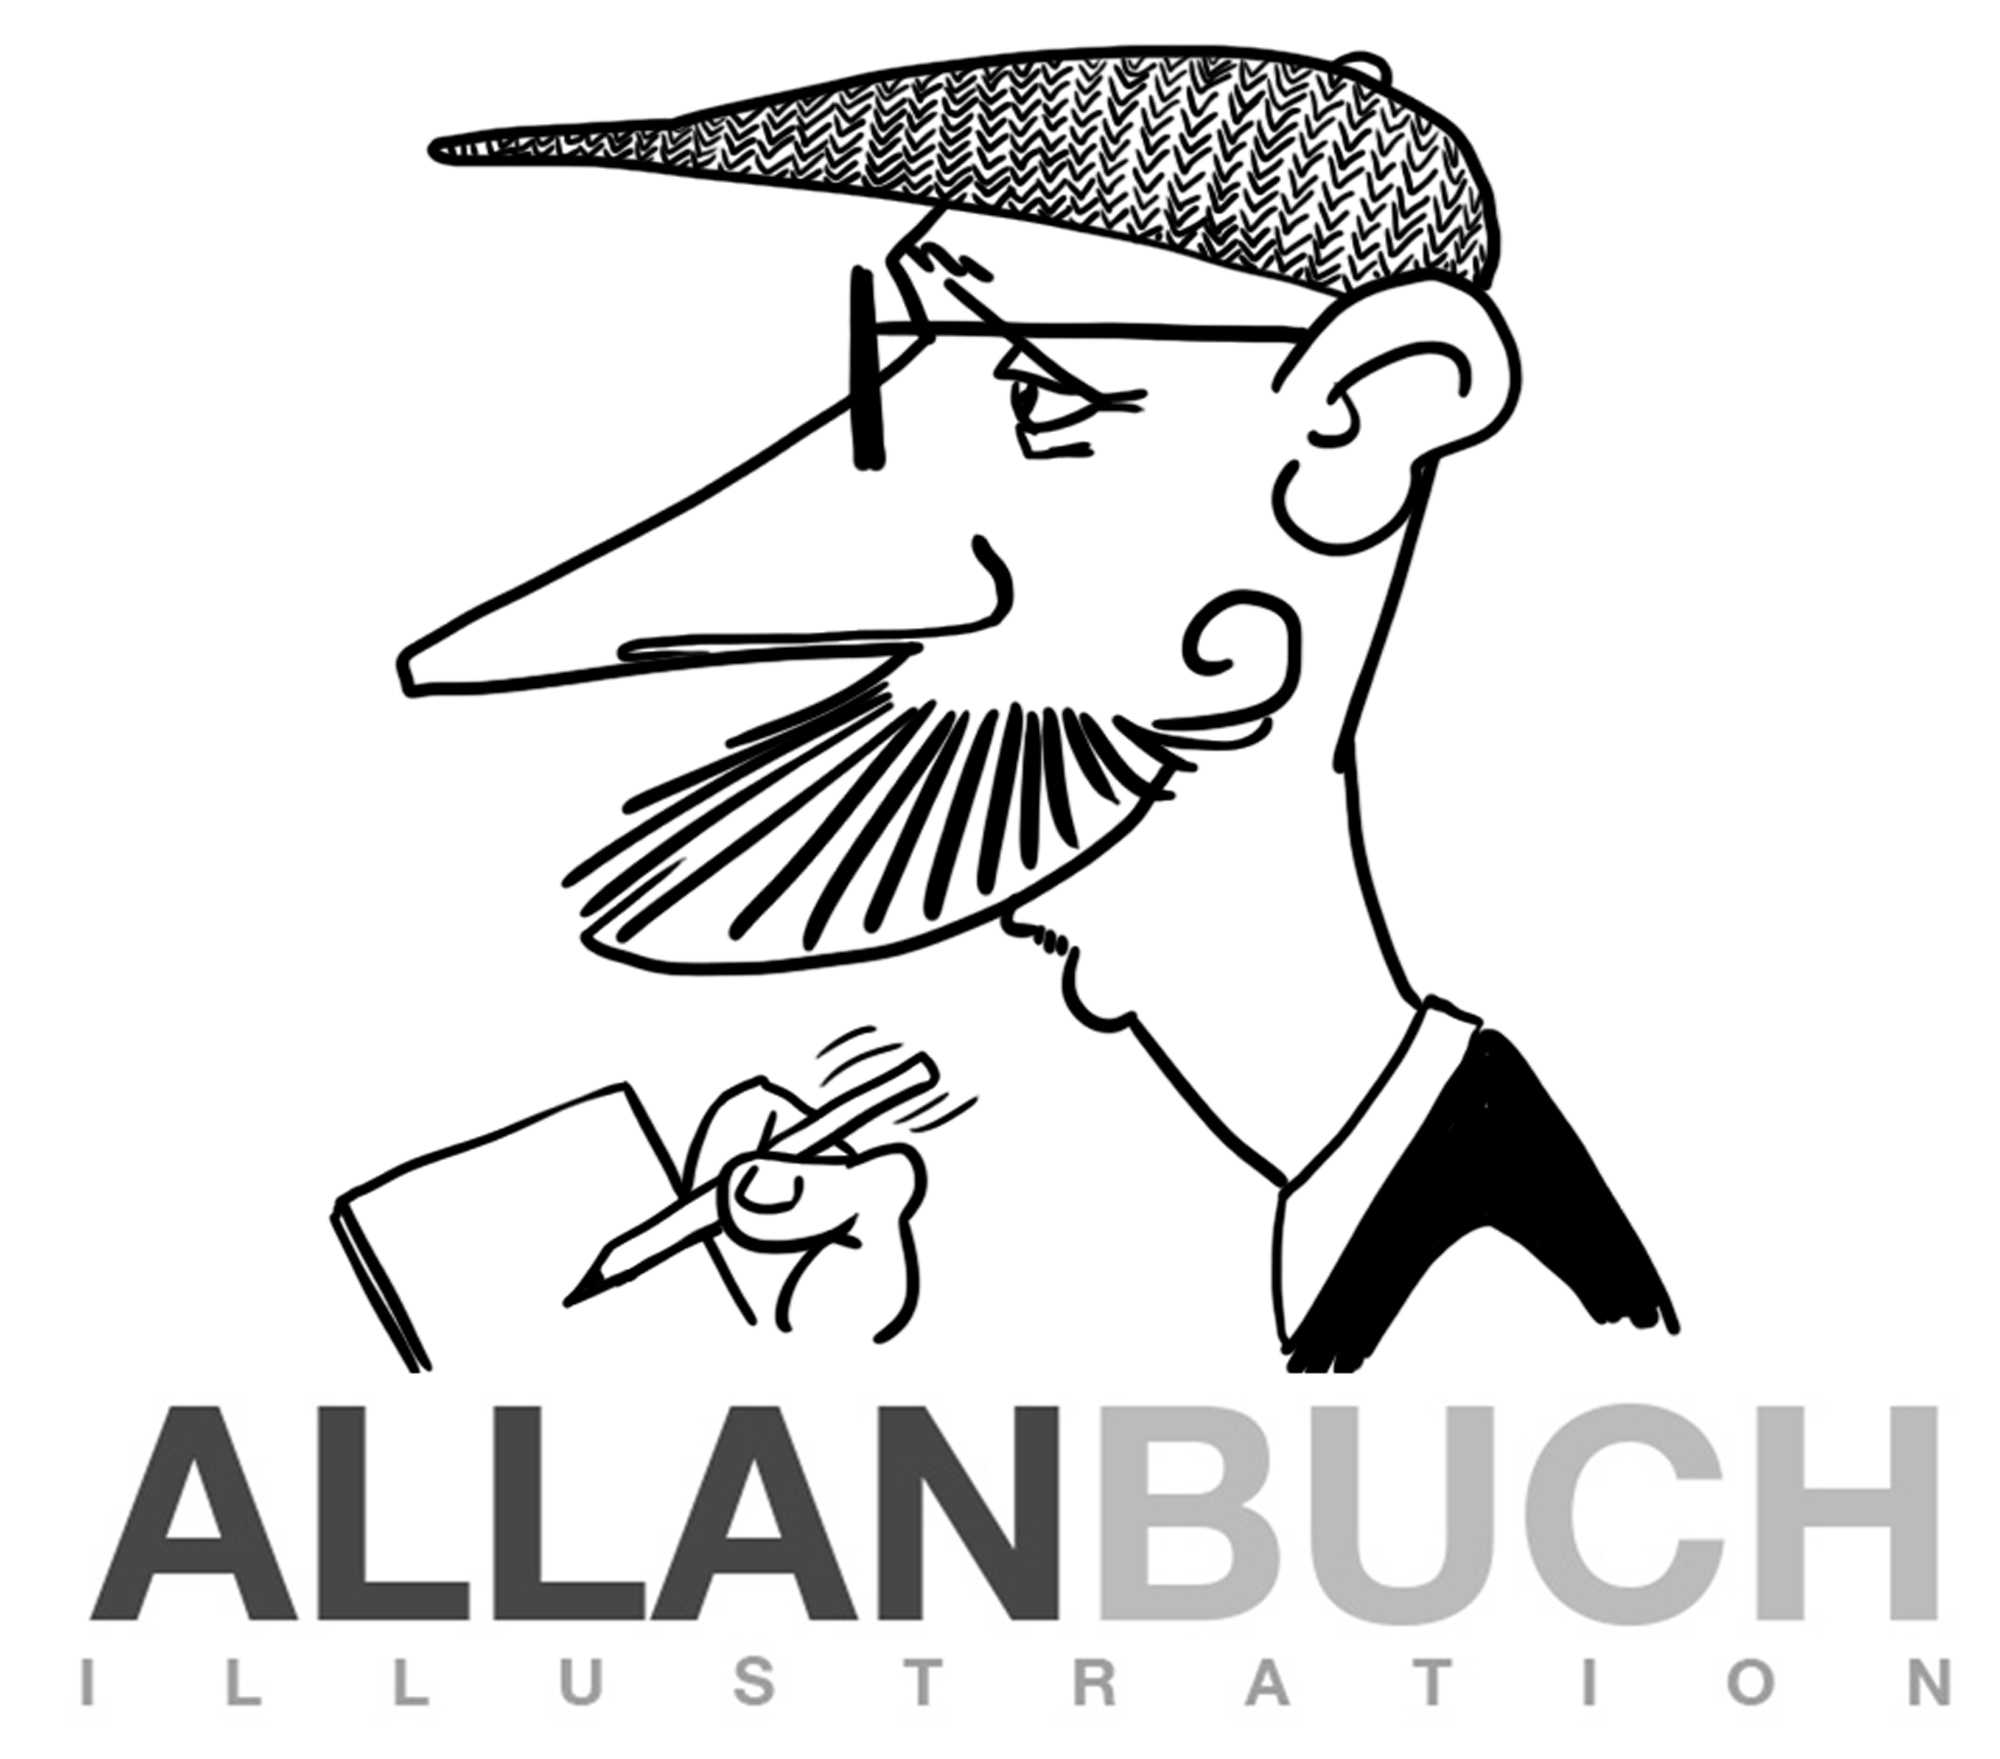 Allan Buch Illustration og karikatur